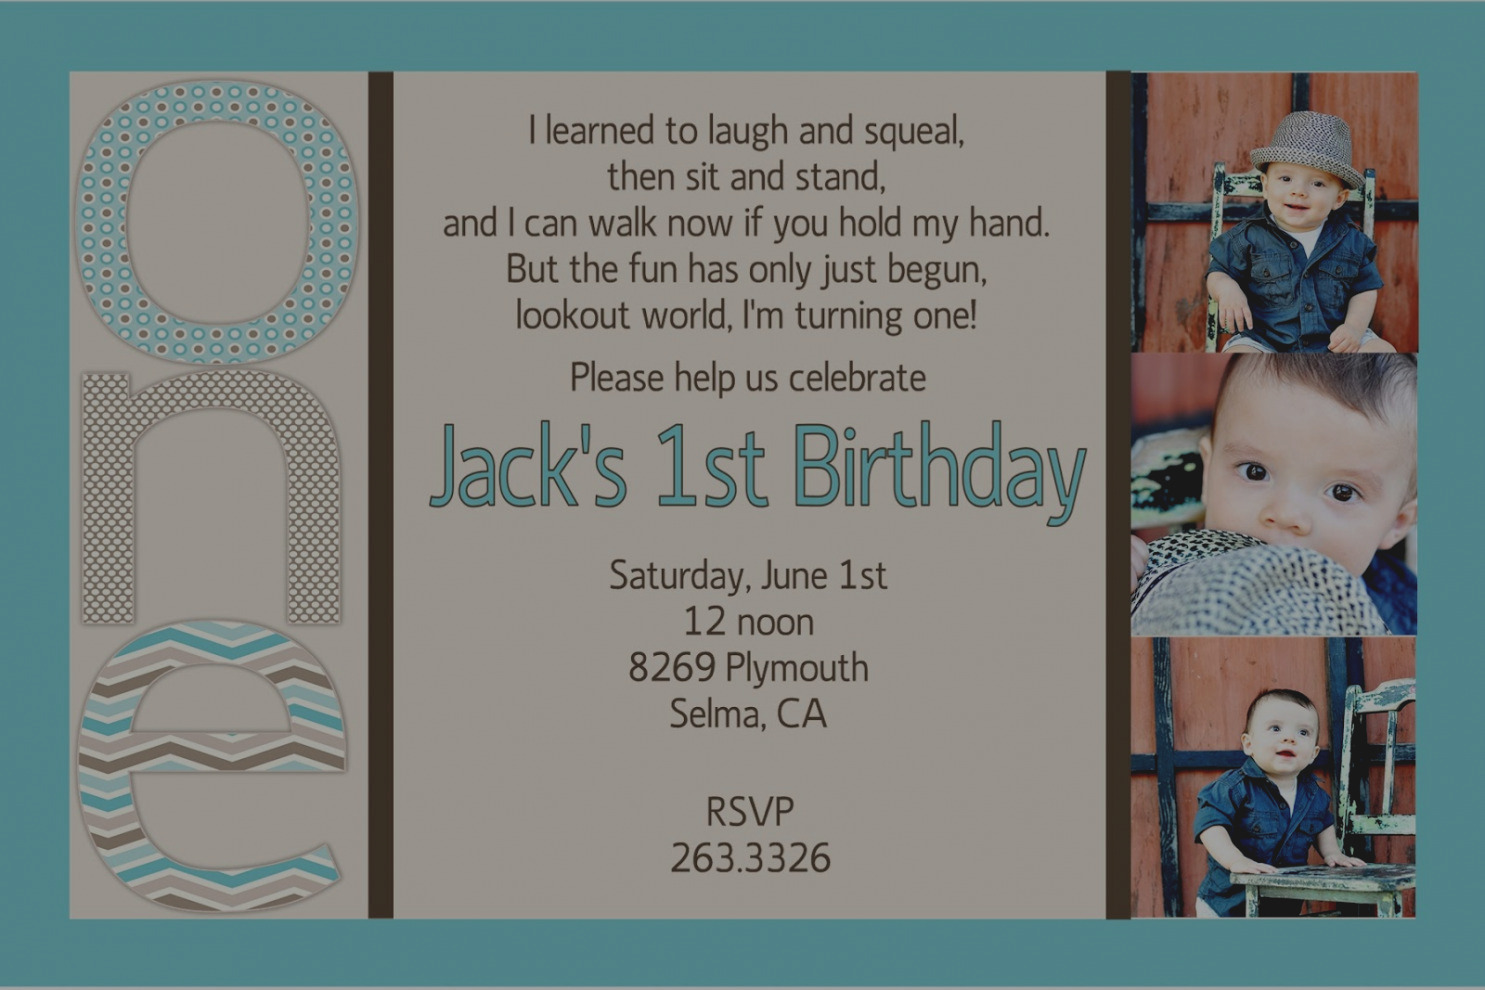 facebook birthday invitation wording ; beautiful-facebook-birthday-party-invitations-collection-invite-wording-cloveranddot-com